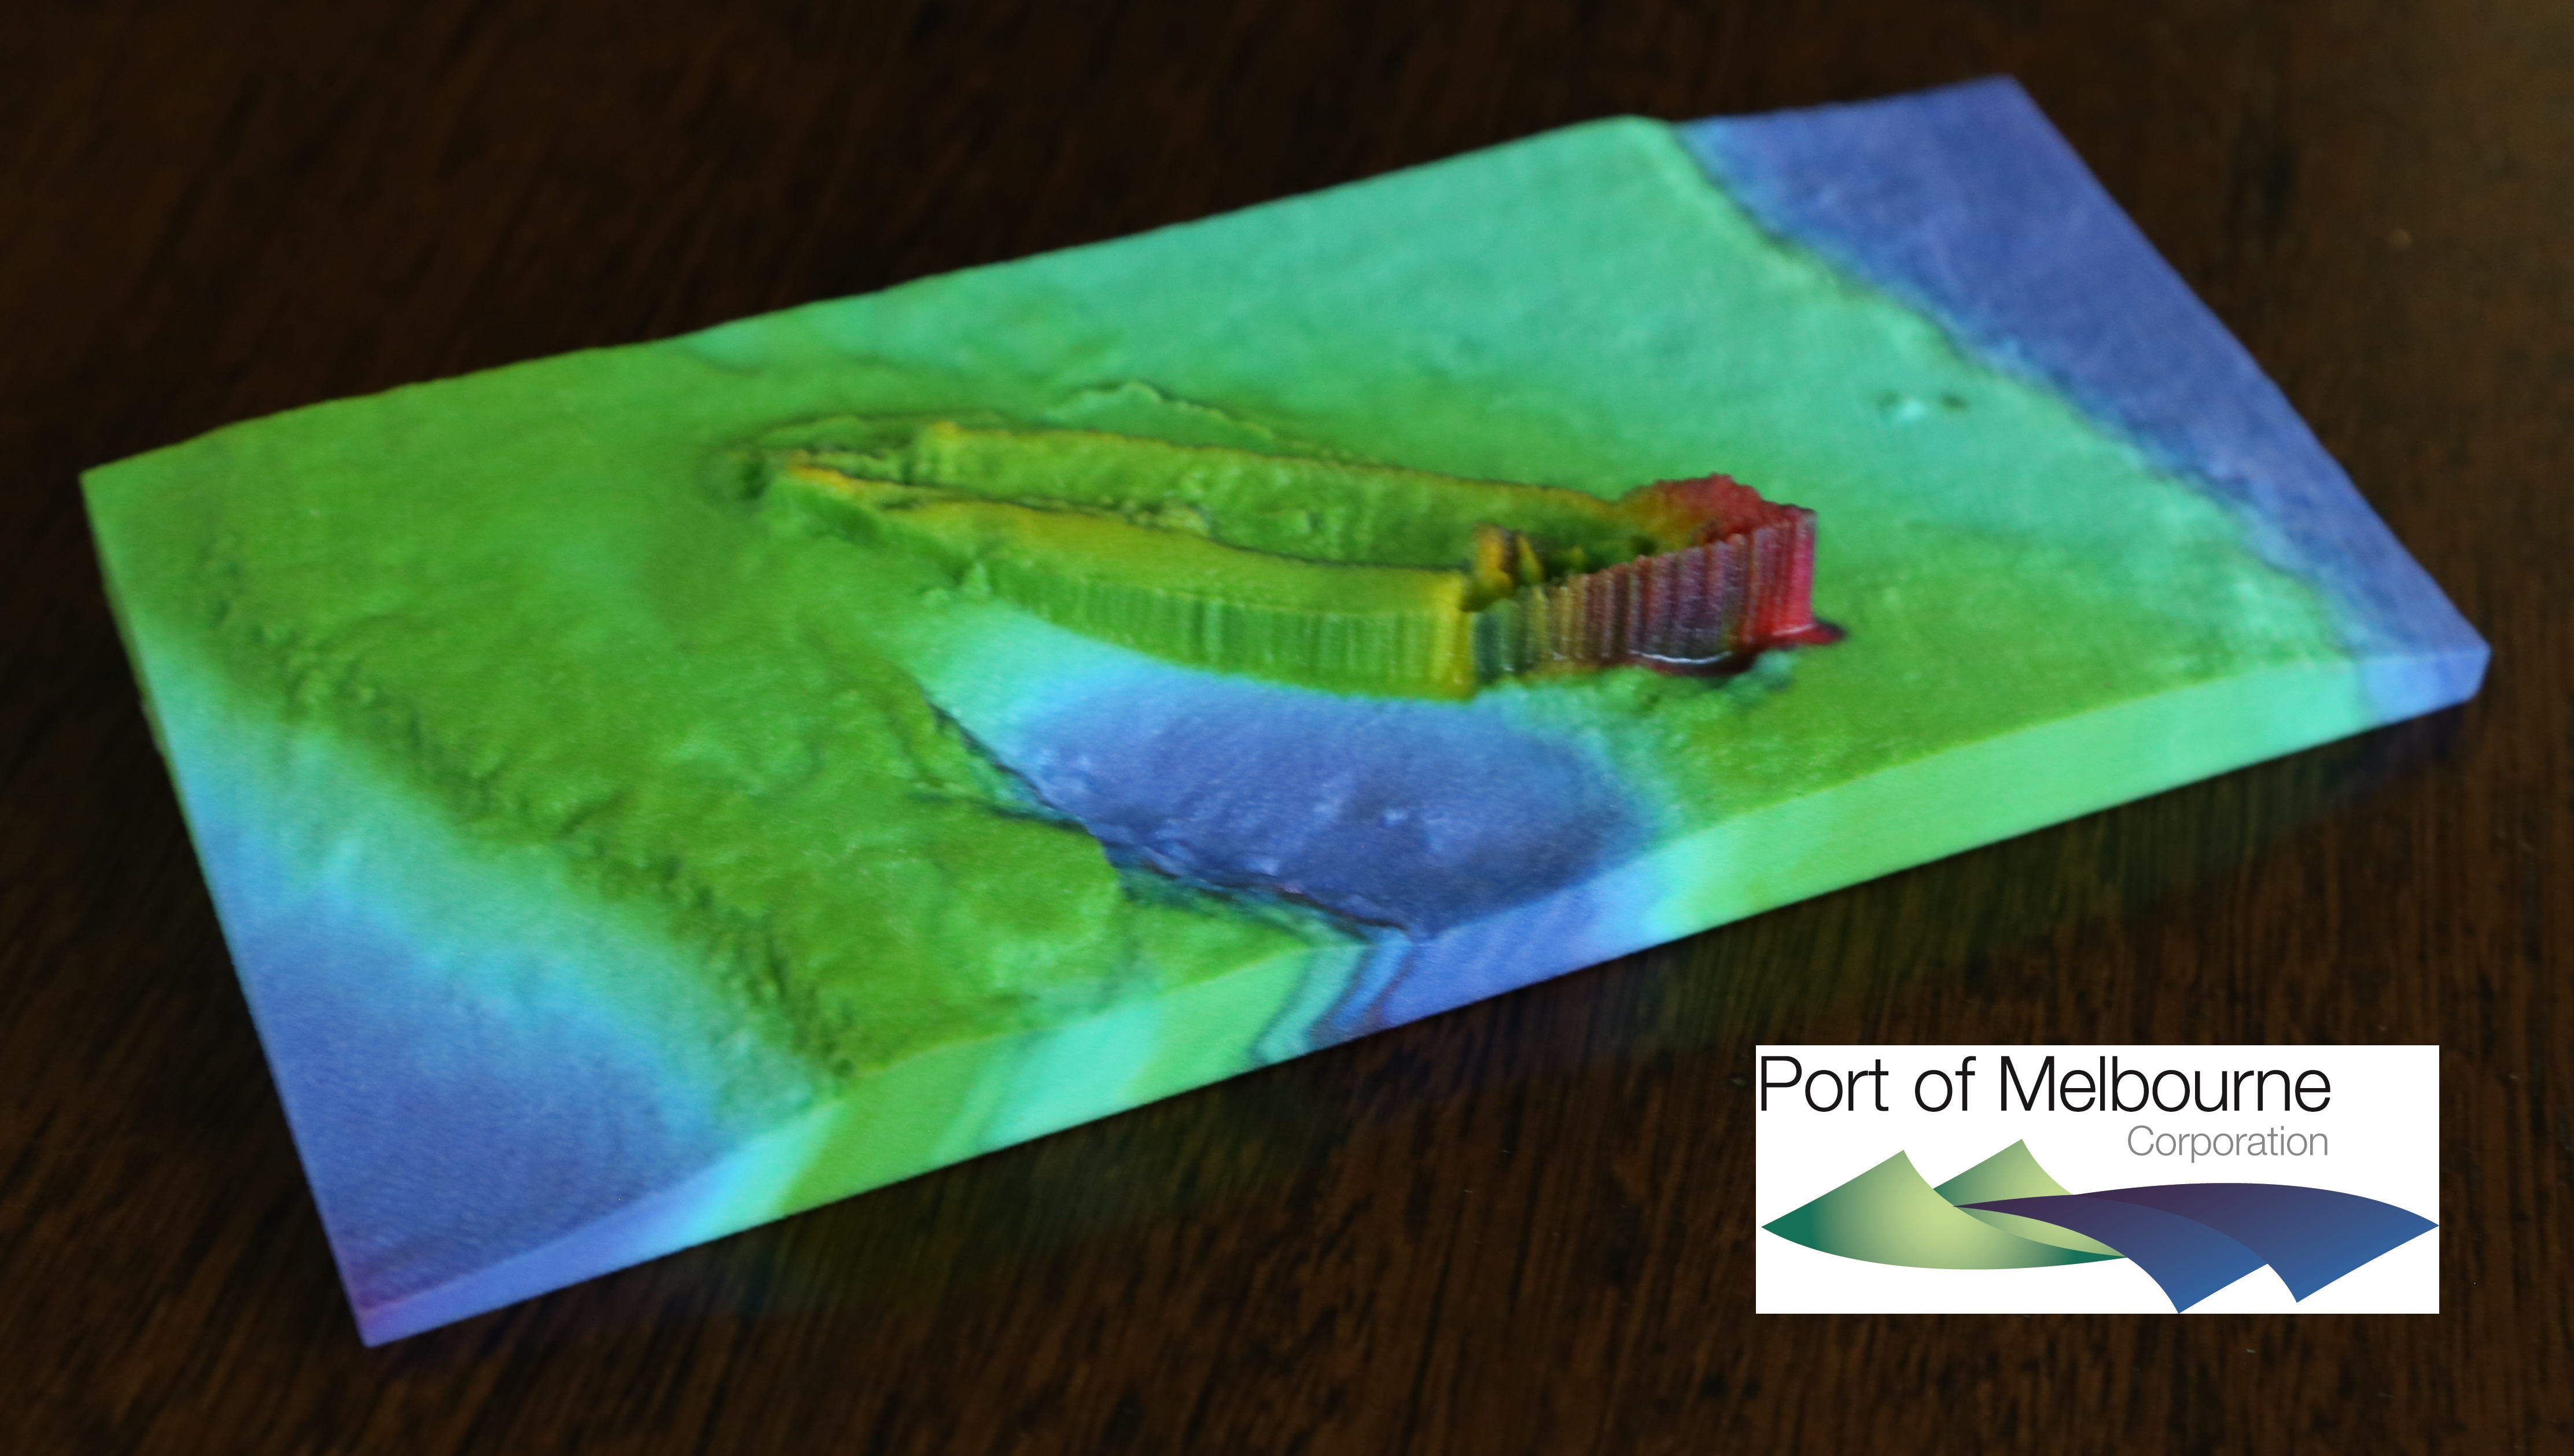 Figure 2 - Eliza Ramsden shipwreck from Multibeam